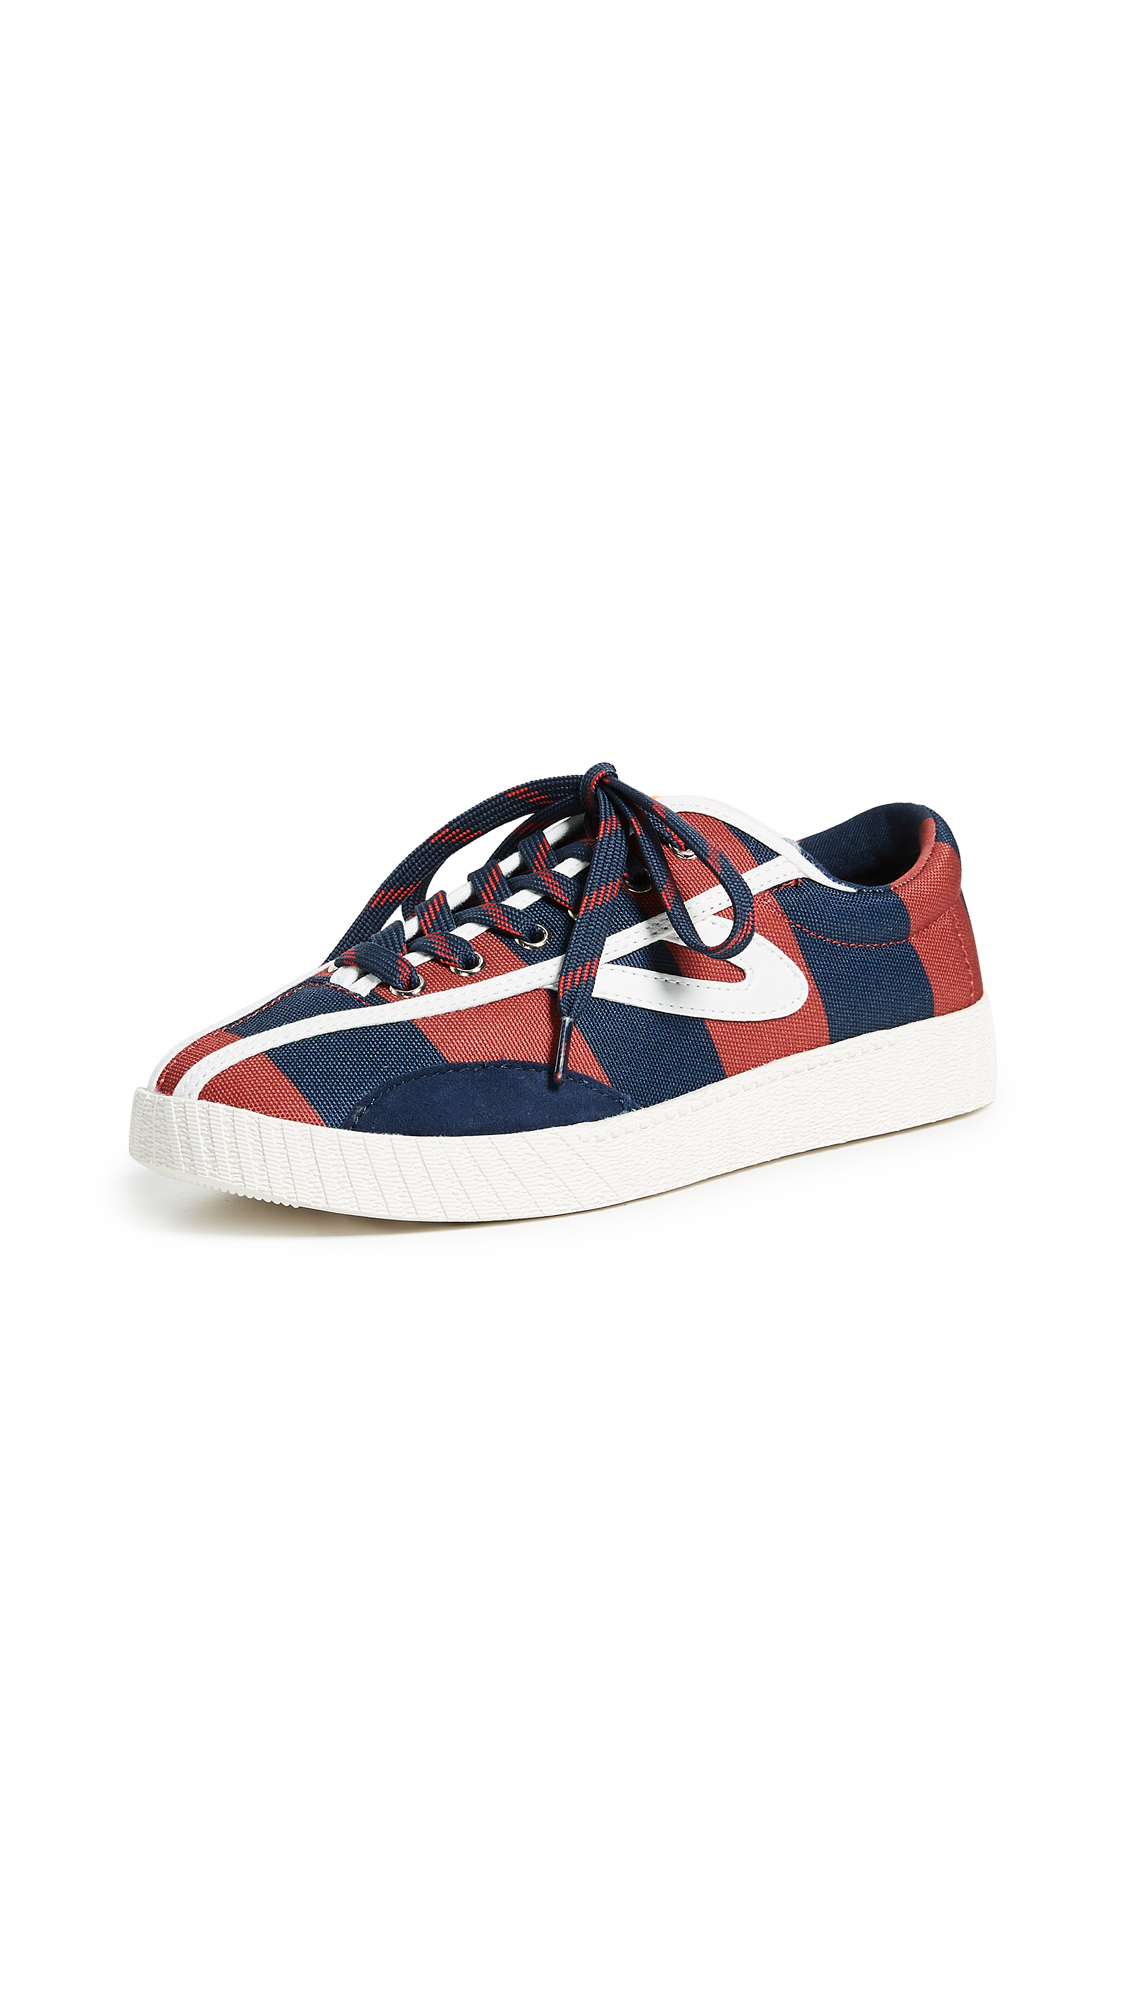 Tretorn x Andre 3000 Rugby Stripe Sneakers - Night/Chili Pepper